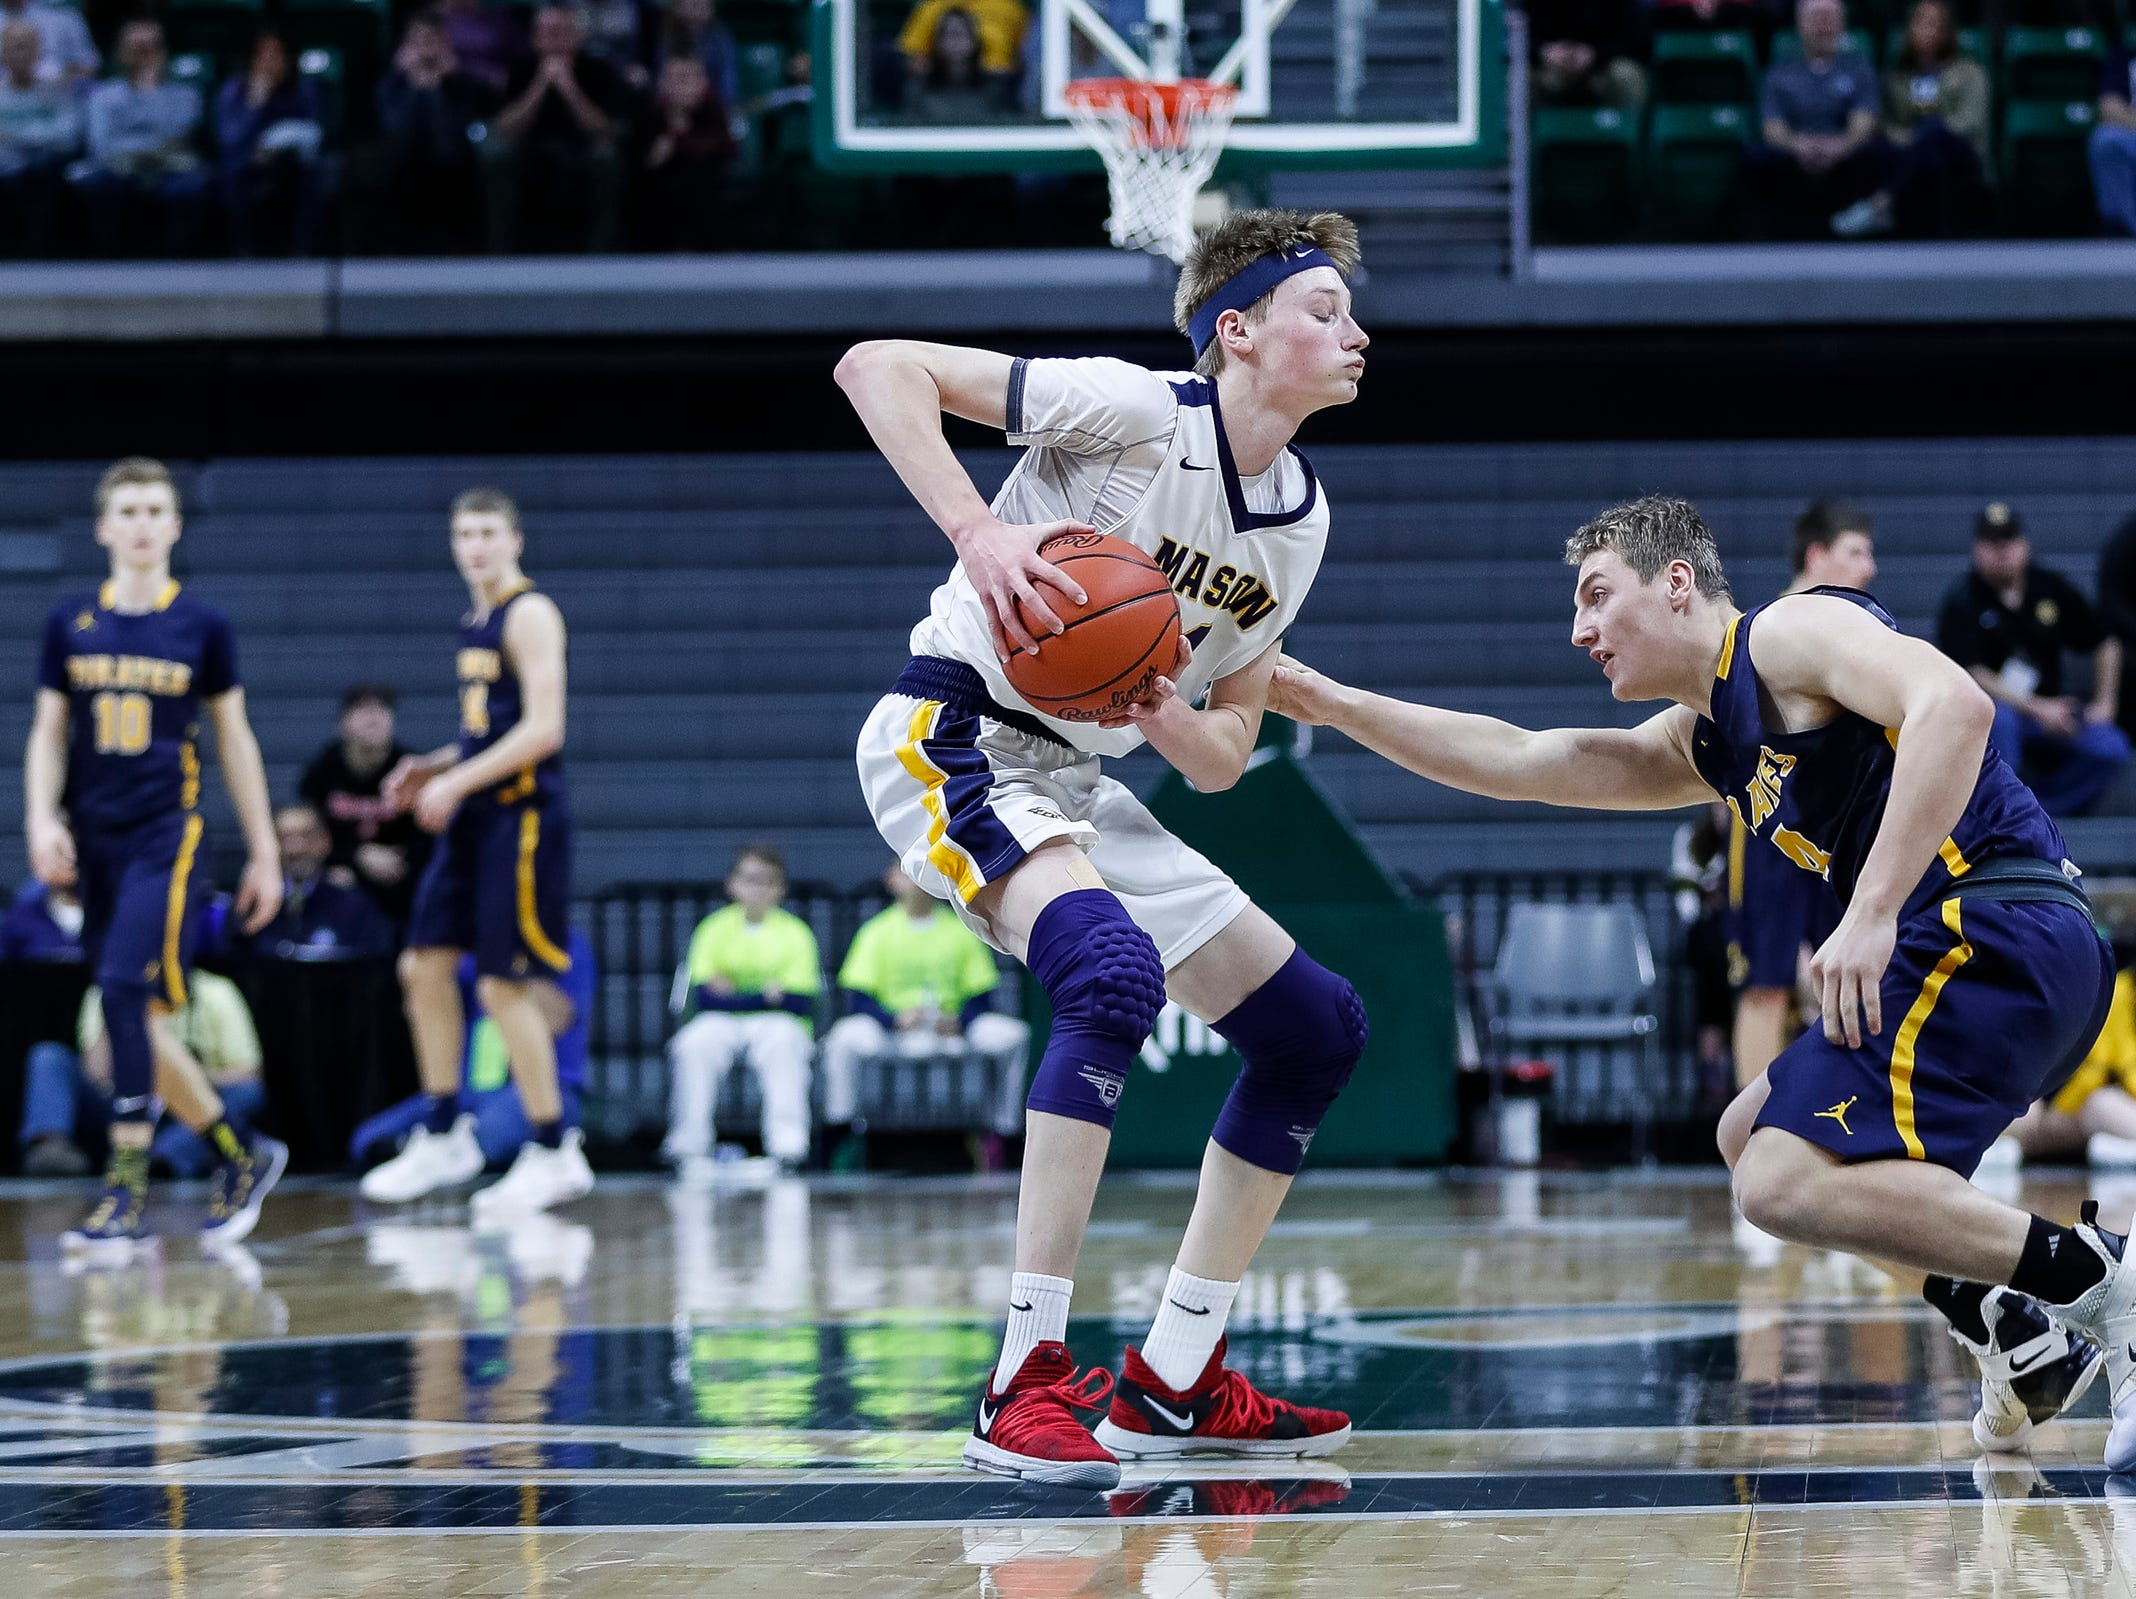 Pewamo-Westphalia's Jacob Pung (4) tries to steal the ball from Erie-Mason's John Sweeney (44) during the first half of MHSAA Division 3 semifinal at the Breslin Center in East Lansing, Thursday, March 14, 2019.